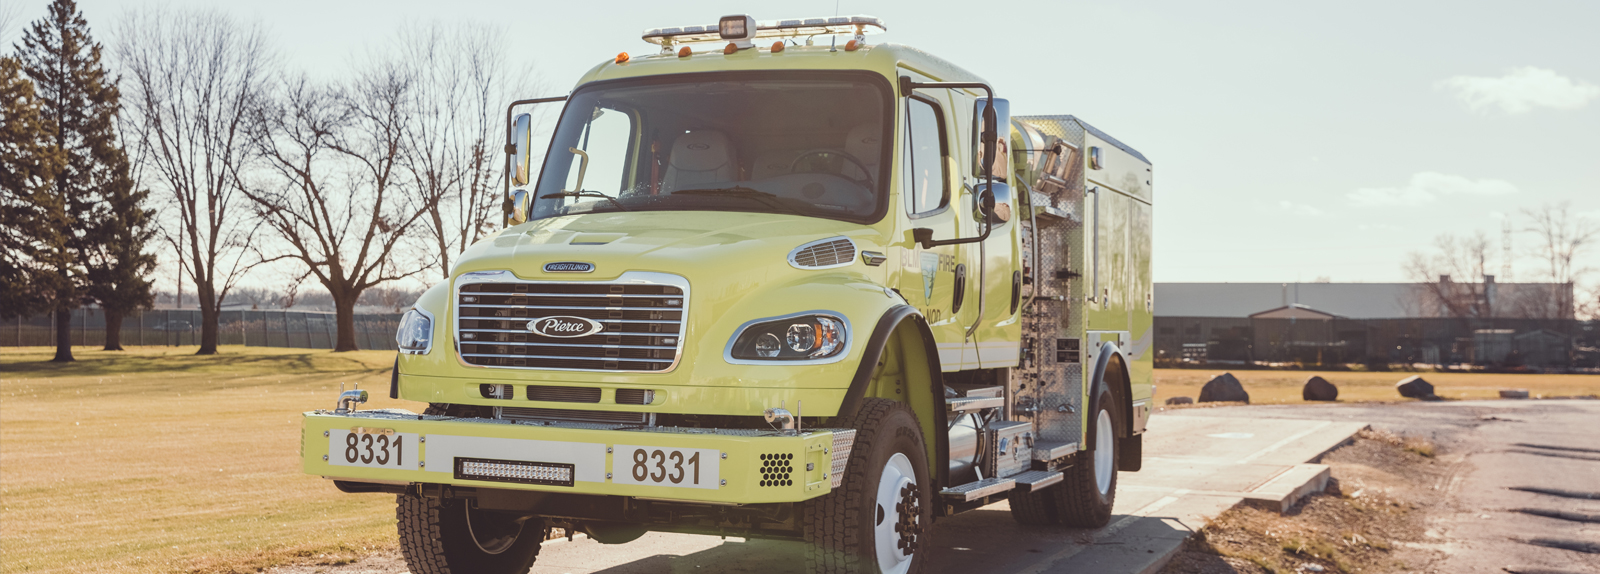 A yellow type 4 fire truck is parked facing forward showing the front end in a rural setting.